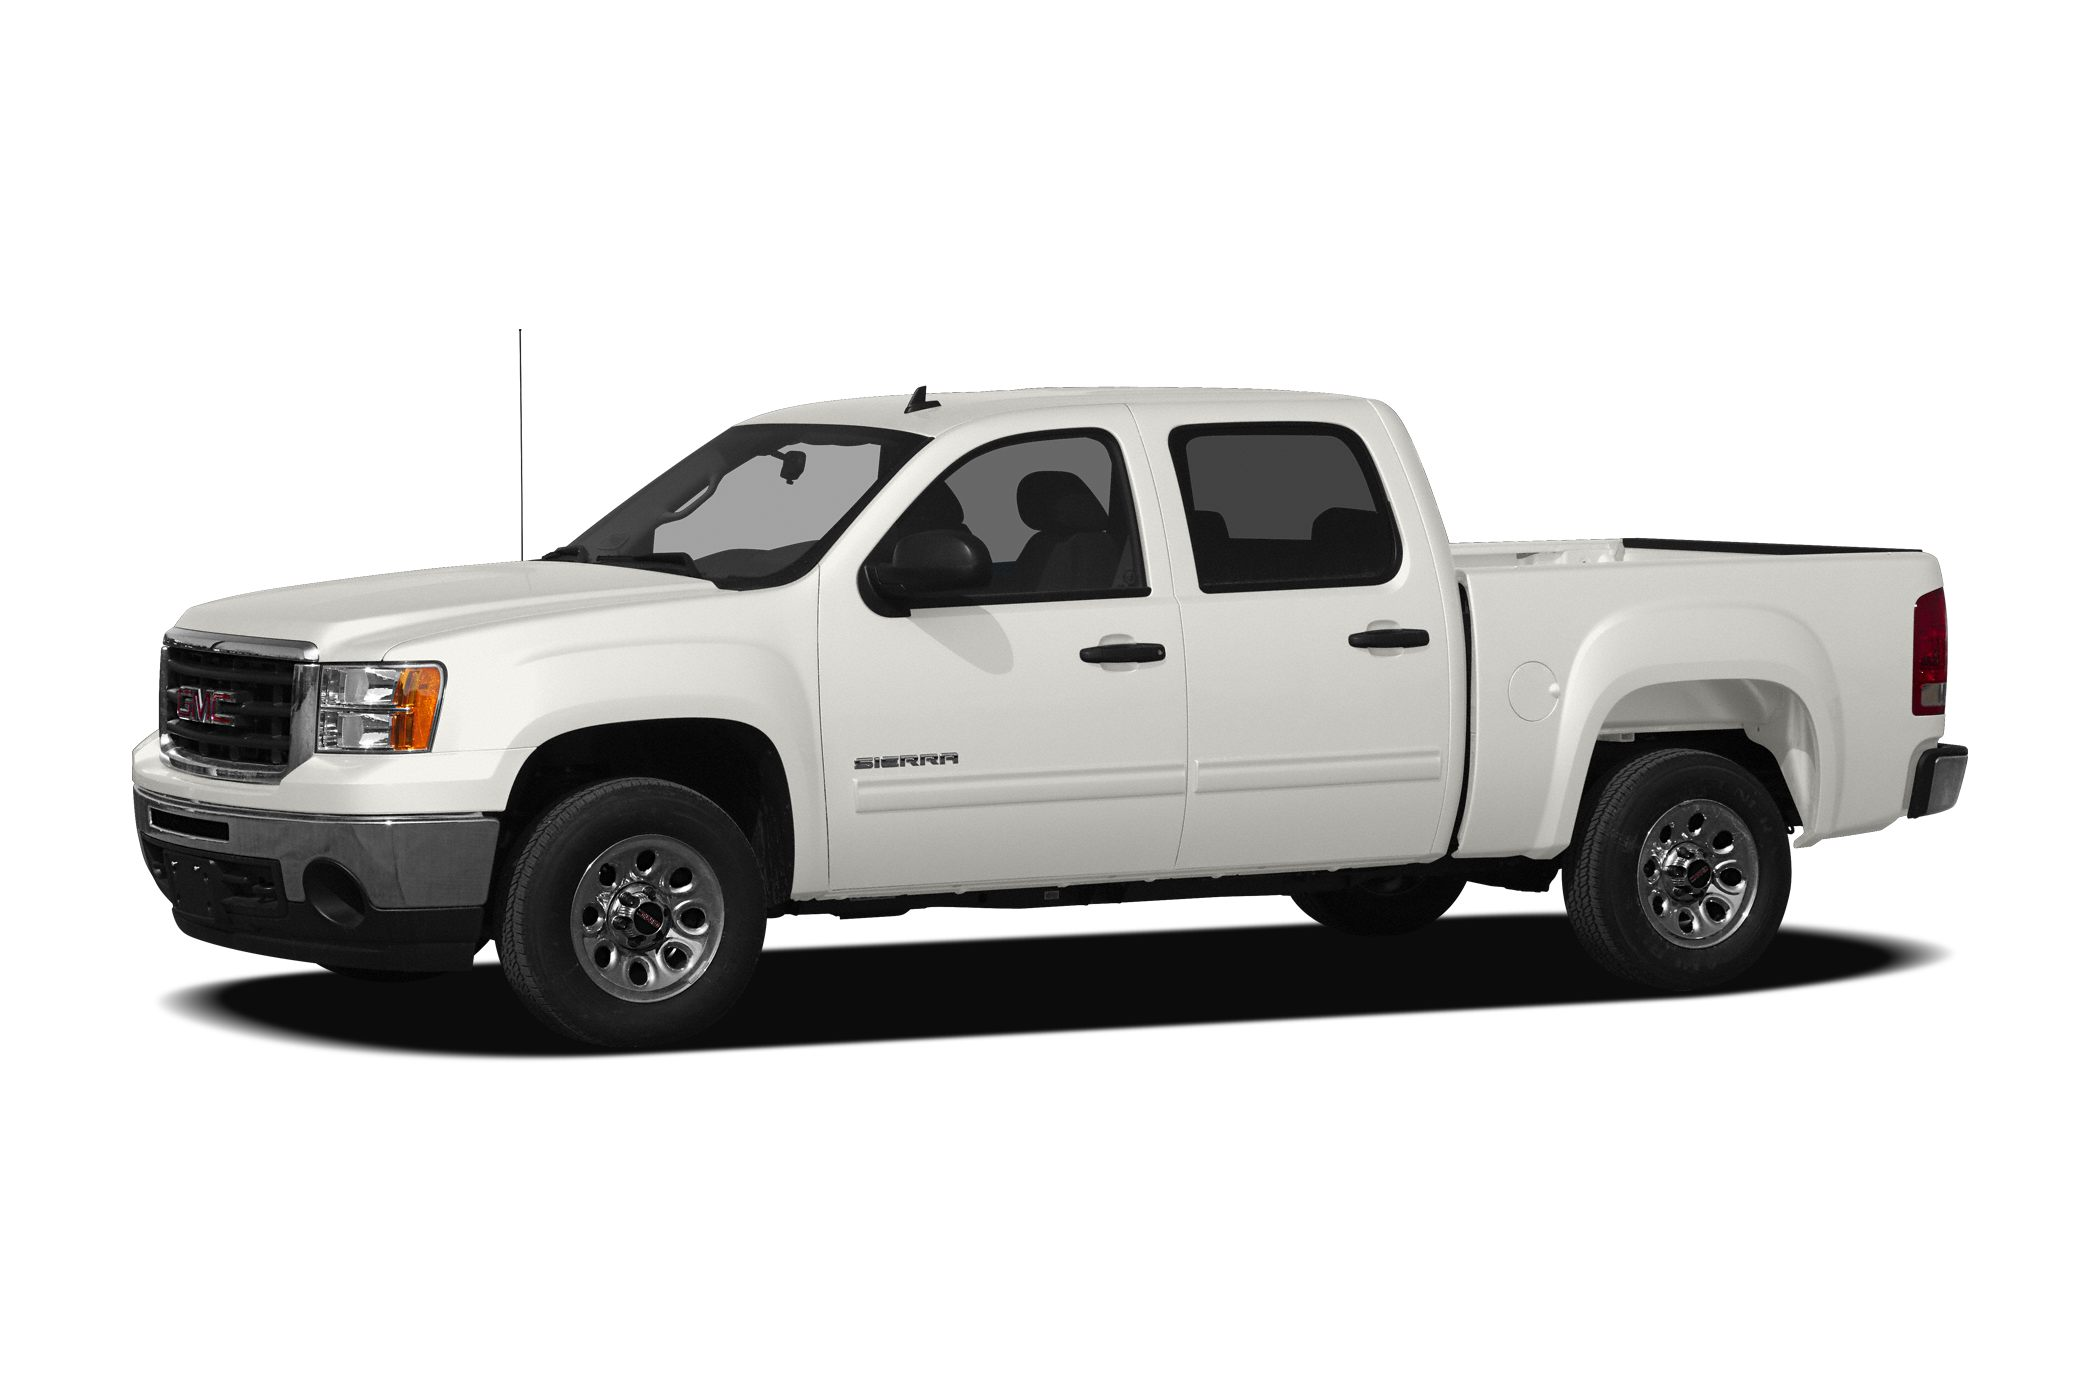 2009 GMC Sierra 1500 SLE Easily practice safe driving with anti-lock brakes and traction control i